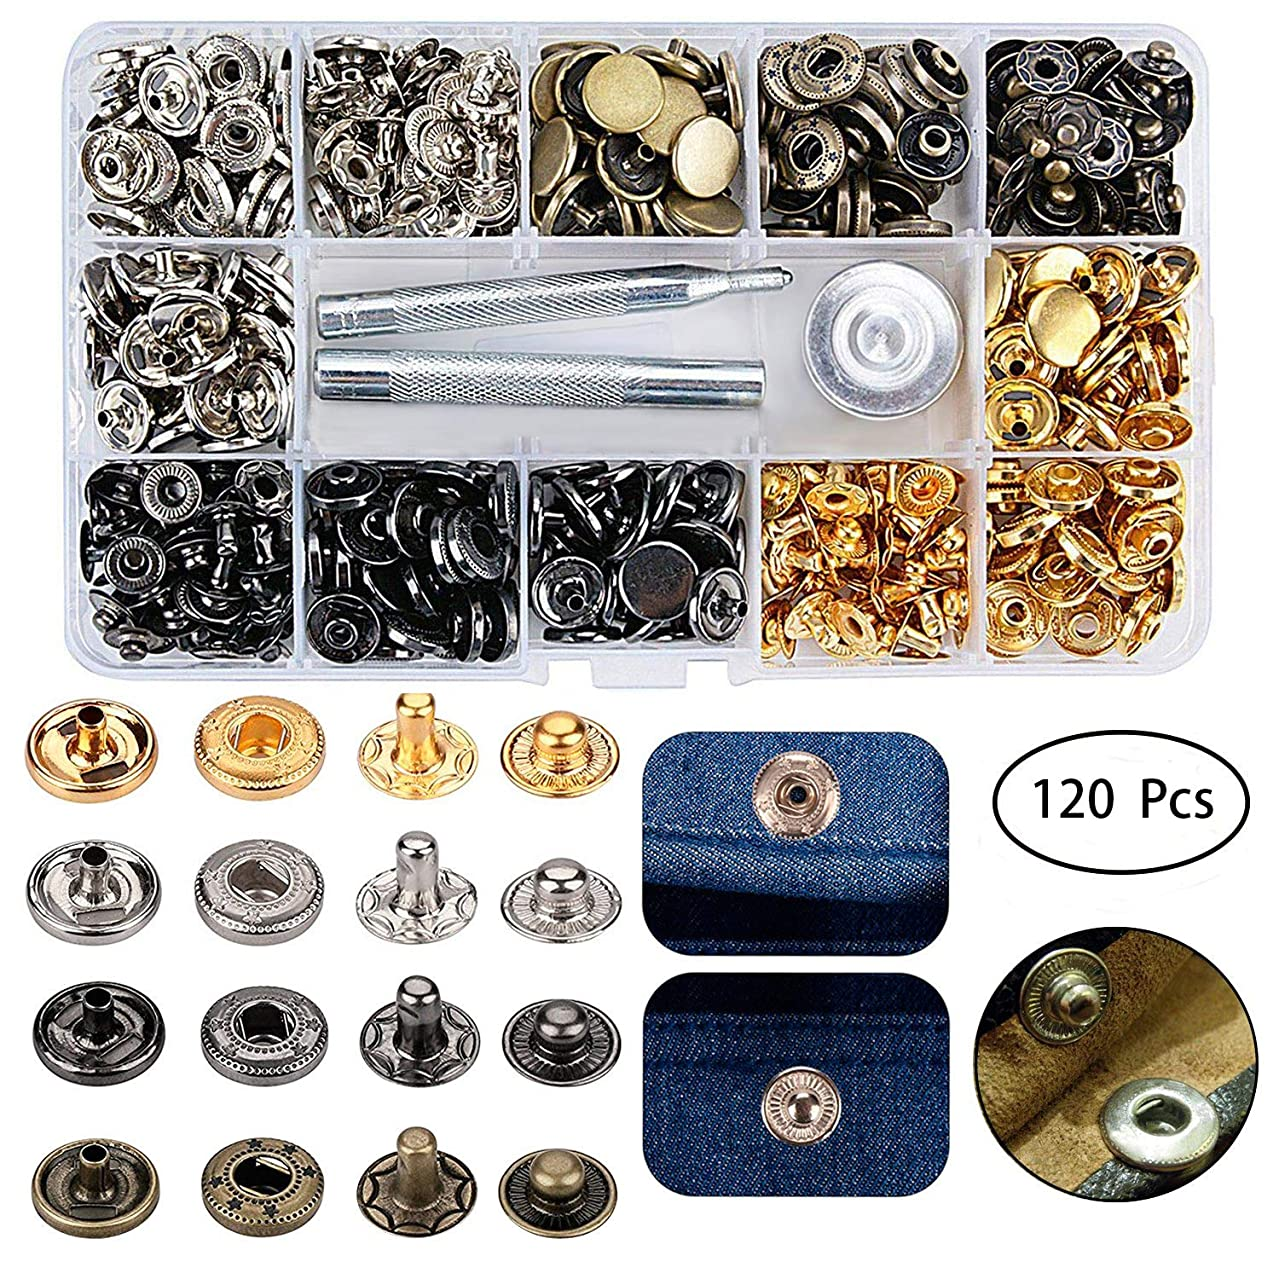 120 Pcs Snap Fasteners Kit,15mm Metal Snap Buttons Press Studs,3 Pieces Fixing Tools and Transparent Storage Box, 4 Color Clothing Snaps Kit for Leather, Jacket, Jeans Wear, Bracelet, Bags